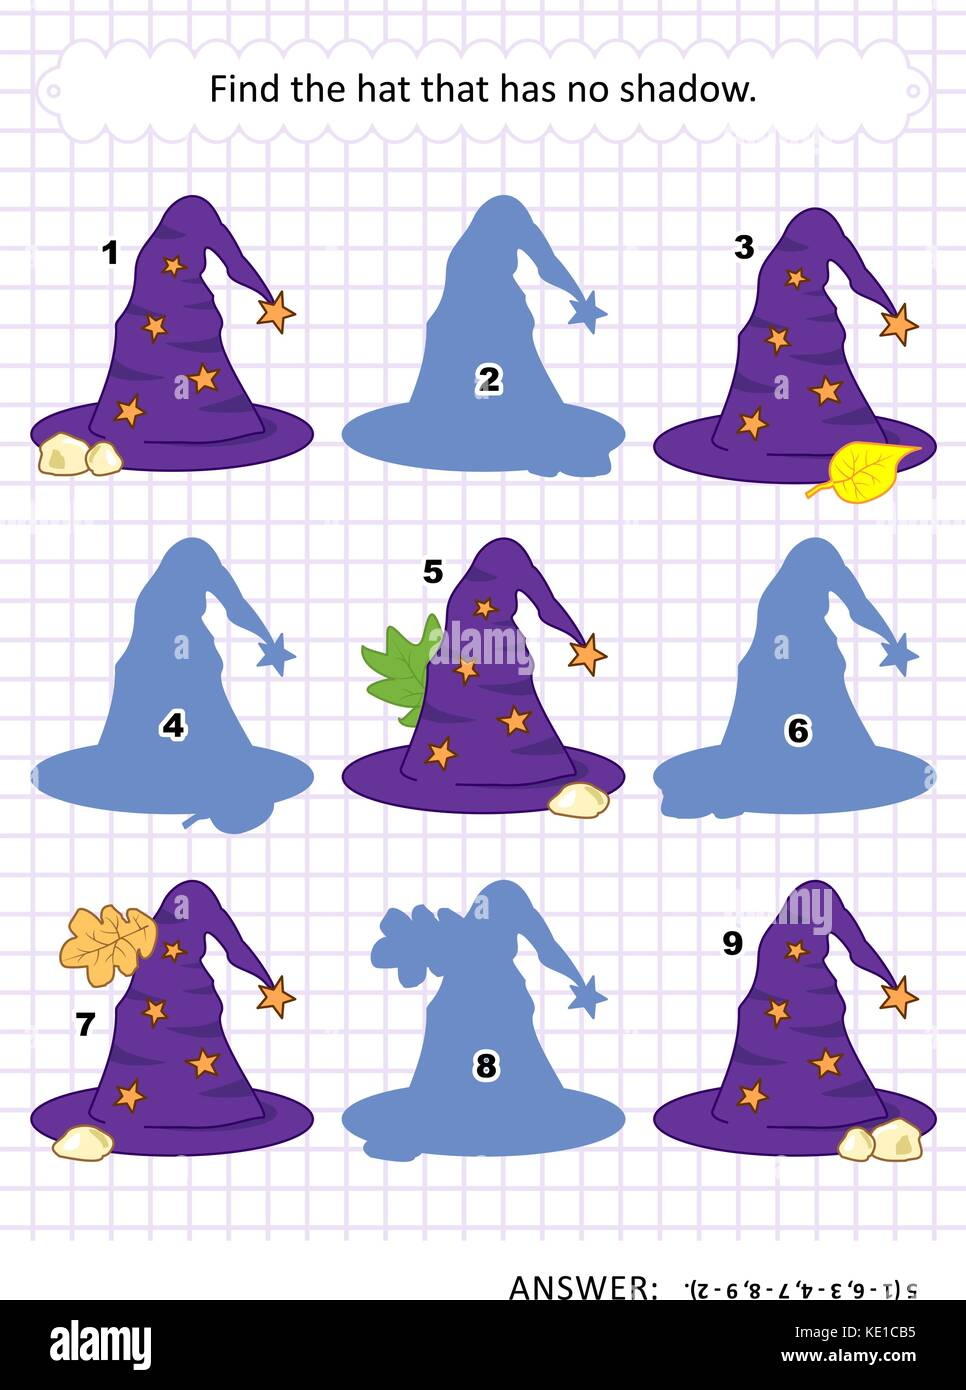 Halloween themed visual puzzle or picture riddle with witch's hat: Find the hat that has no shadow. Answer included. - Stock Image